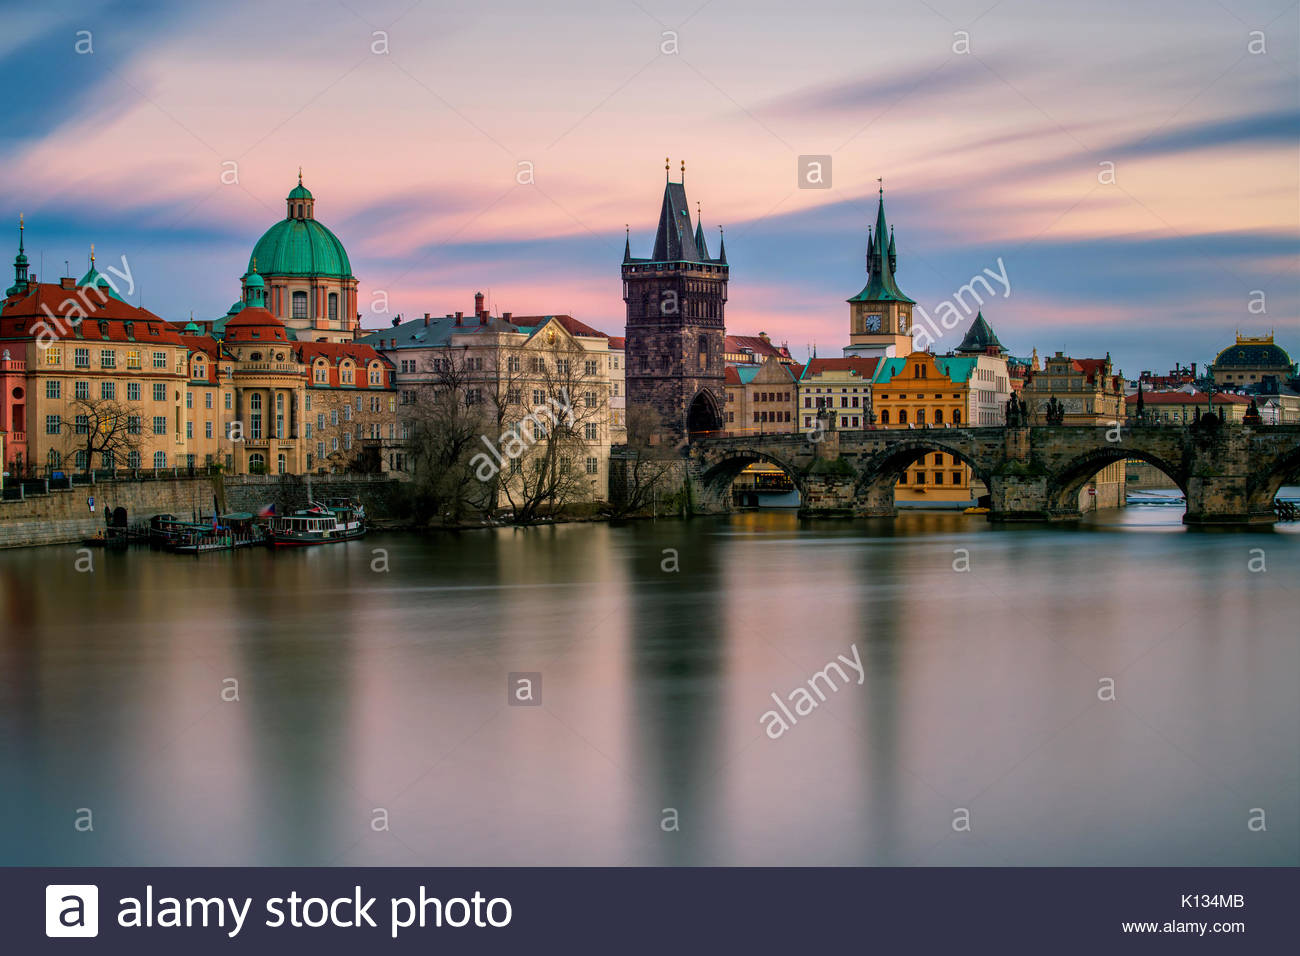 Amazing towers of Charles bridge and old town district with reflection at Vltava river during cloudy sunset, Prague, - Stock Image